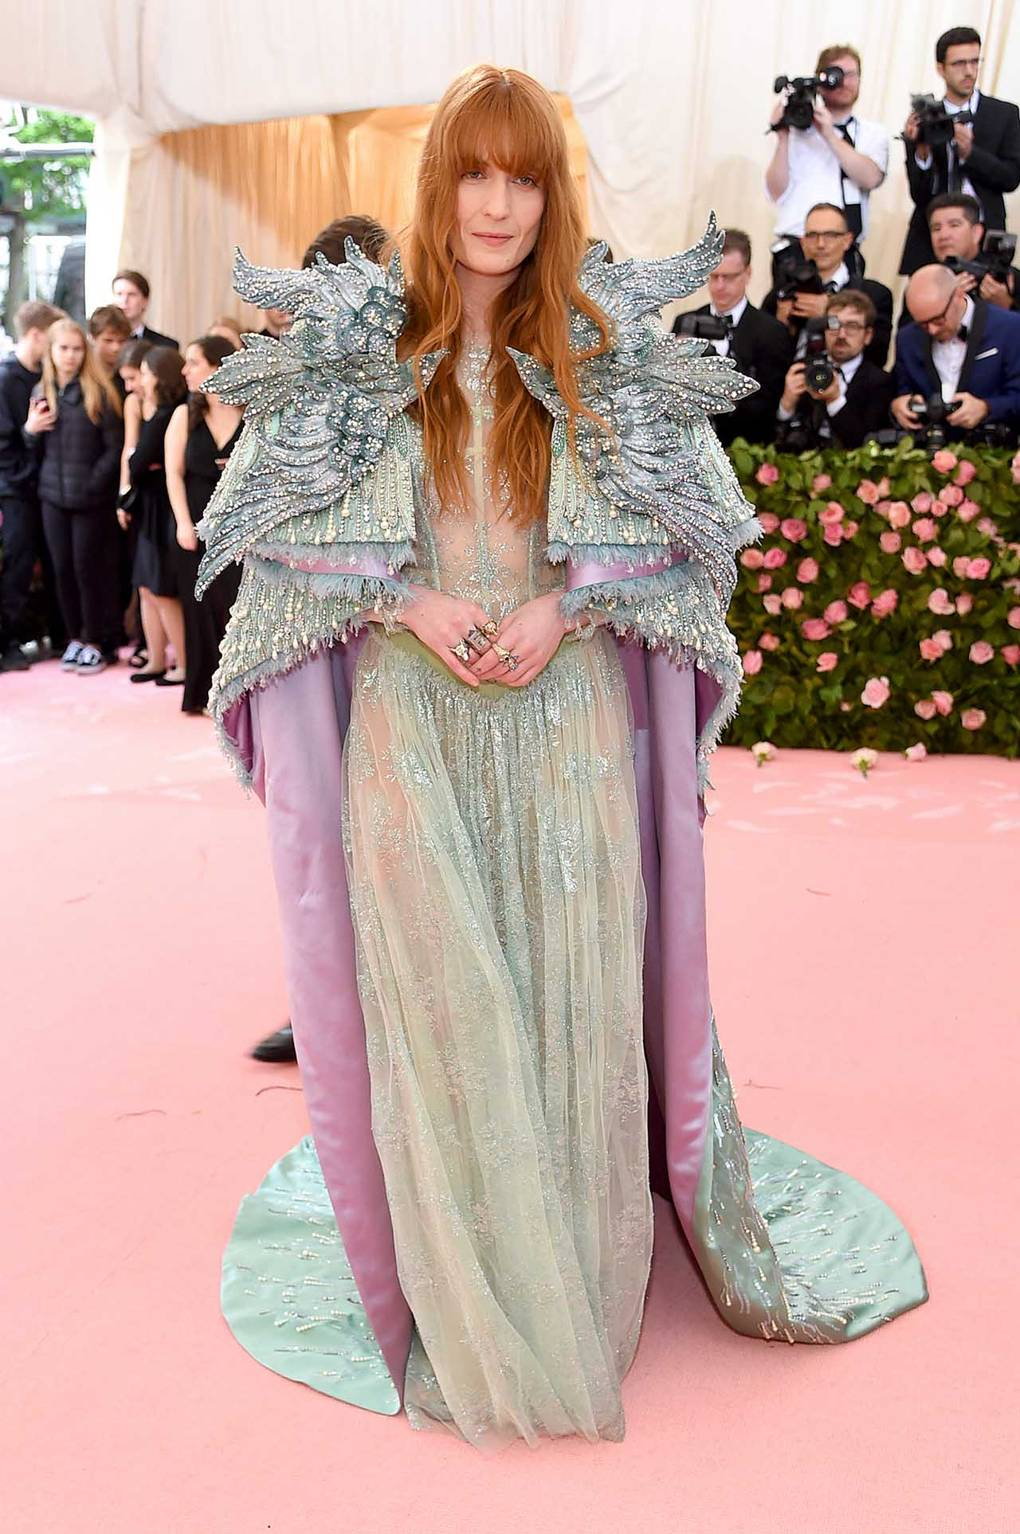 Florence Welch wearing Gucci - Statement shoulders was a big trend on this years pink carpet and Florence's cape did not disappoint. I'm a big fan of layers and structure and this cape designed bu Gucci's Alessandro Michele delivered for me! This Magical medieval-inspired turquoise and lilac beaded cape was perfectly matched with a sheer lace dress embellished with delicate jewels. BEAUTIFUL!